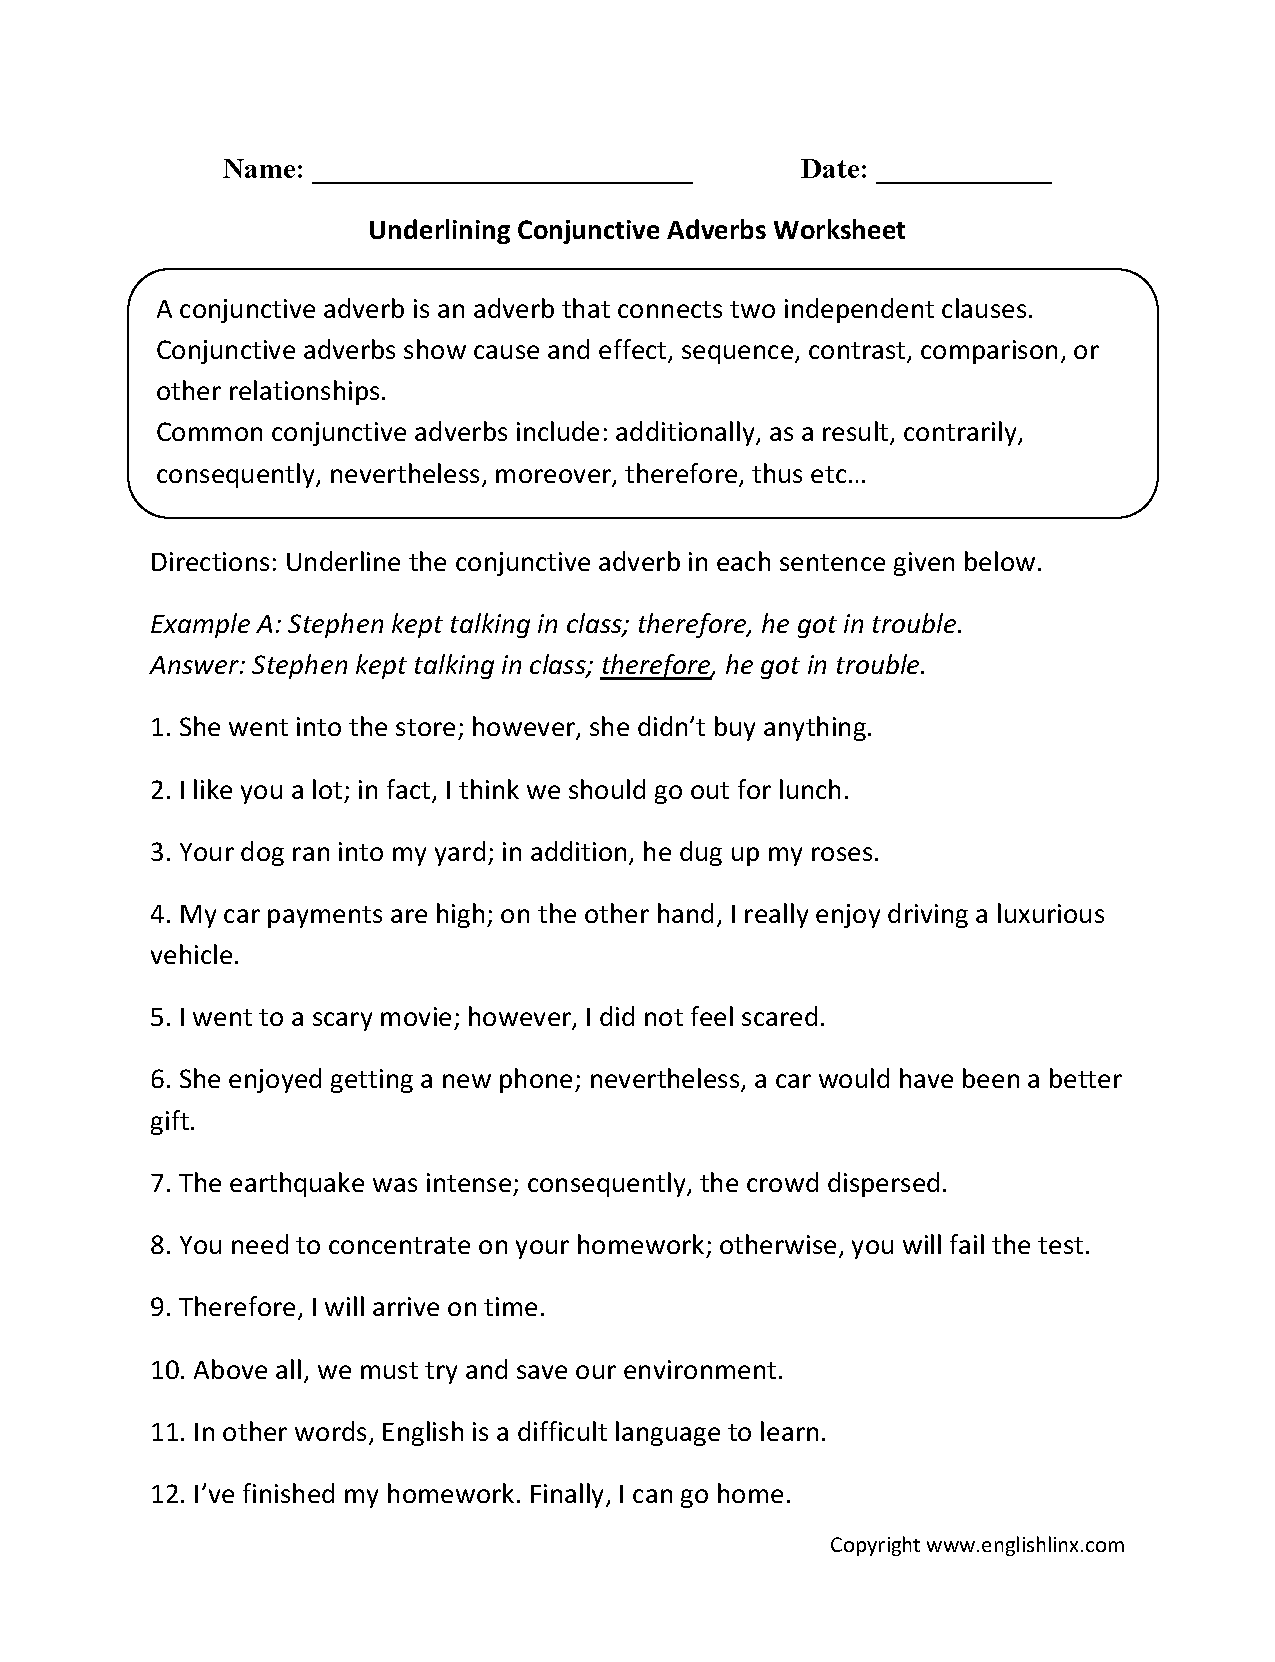 Proatmealus  Surprising Englishlinxcom  Conjunctions Worksheets With Lovely Worksheet With Endearing  Digit Subtraction With Regrouping Word Problems Worksheets Also Introduction To Spanish Worksheets In Addition Free Printable Worksheets For Th Grade Language Arts And Grade  Problem Solving Worksheets As Well As Free Math Worksheets With Answers Additionally Multiplication And Division Decimals Worksheets From Englishlinxcom With Proatmealus  Lovely Englishlinxcom  Conjunctions Worksheets With Endearing Worksheet And Surprising  Digit Subtraction With Regrouping Word Problems Worksheets Also Introduction To Spanish Worksheets In Addition Free Printable Worksheets For Th Grade Language Arts From Englishlinxcom